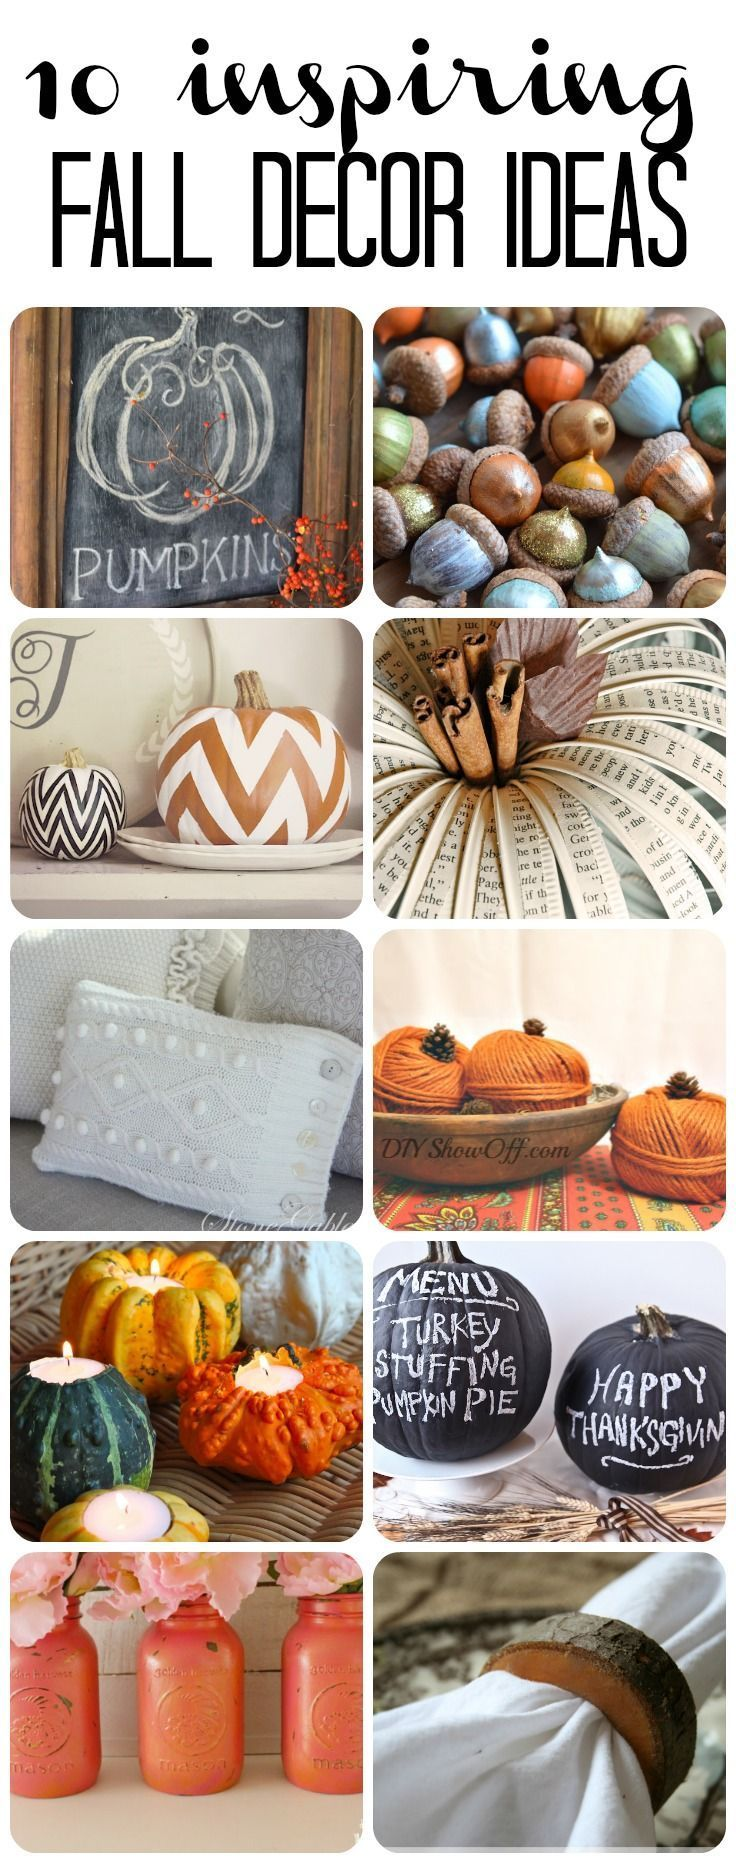 Fall decorating ideas on pinterest - 10 Inspiring Diy Fall Decor Ideas